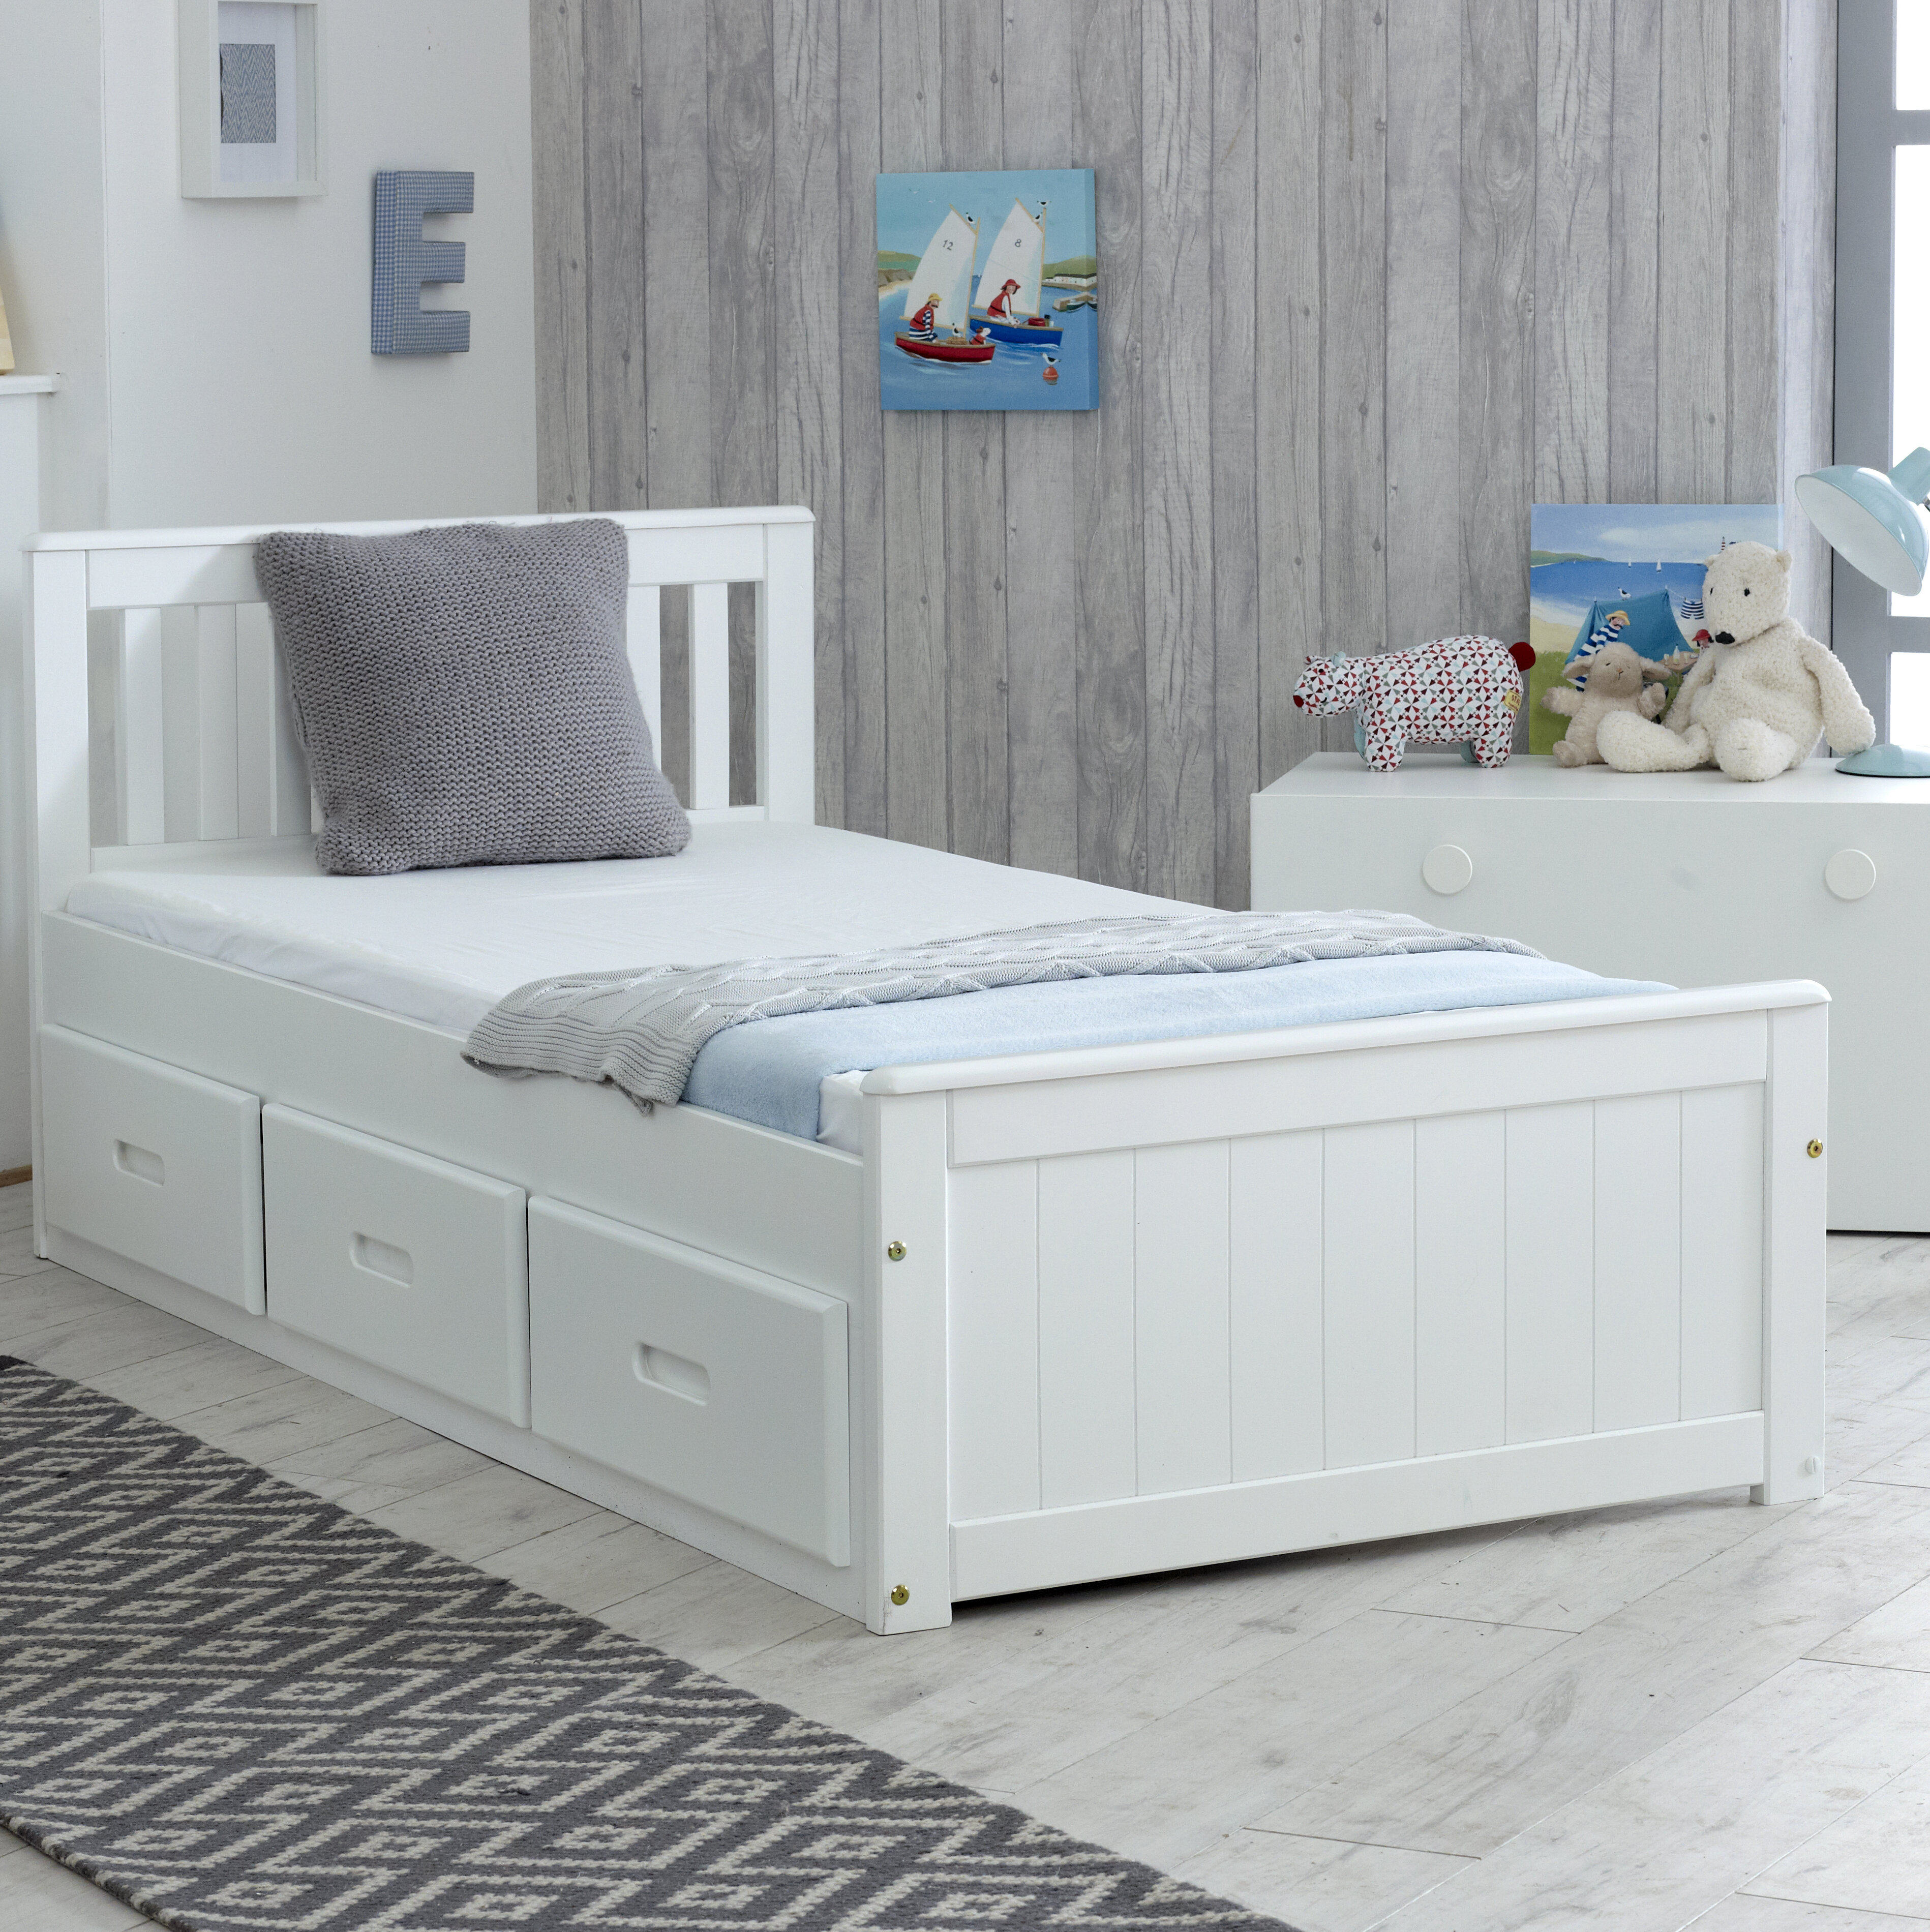 double shelves q white headboards fascinating full design headboard home frames trends wonderful pictures single storage elegant with bed metal brackets and footboard ideas for size frame bedroom king